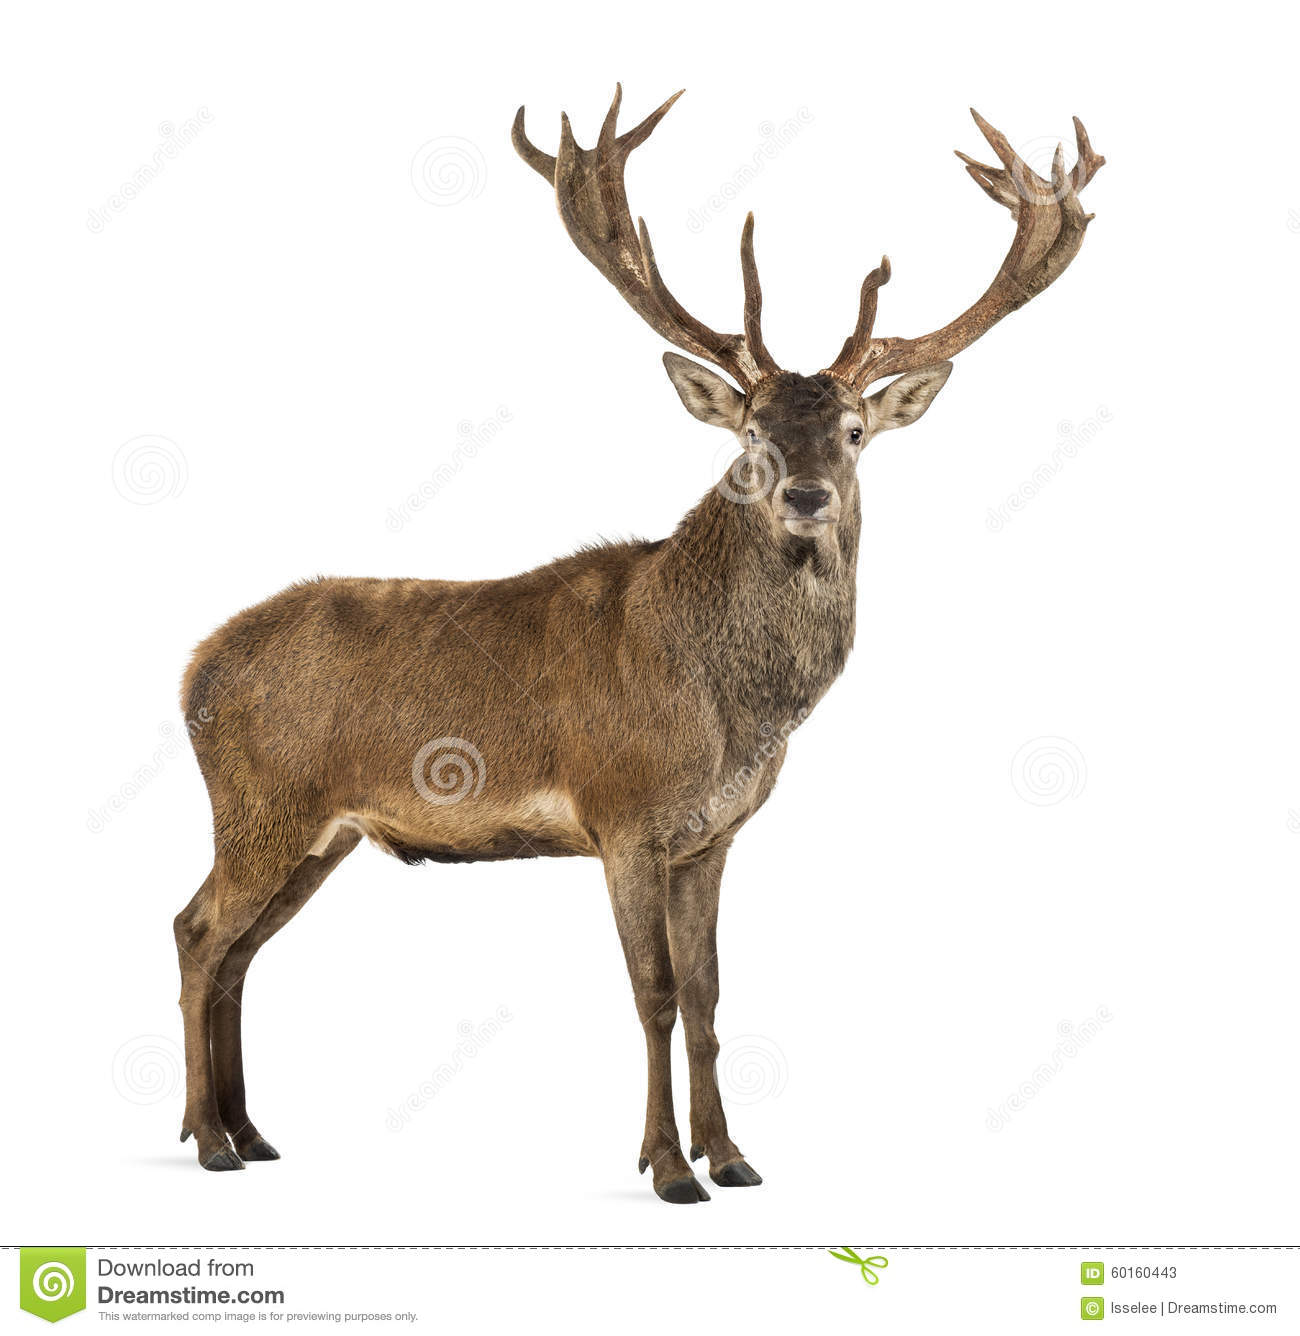 Red deer stag in front of a white background.